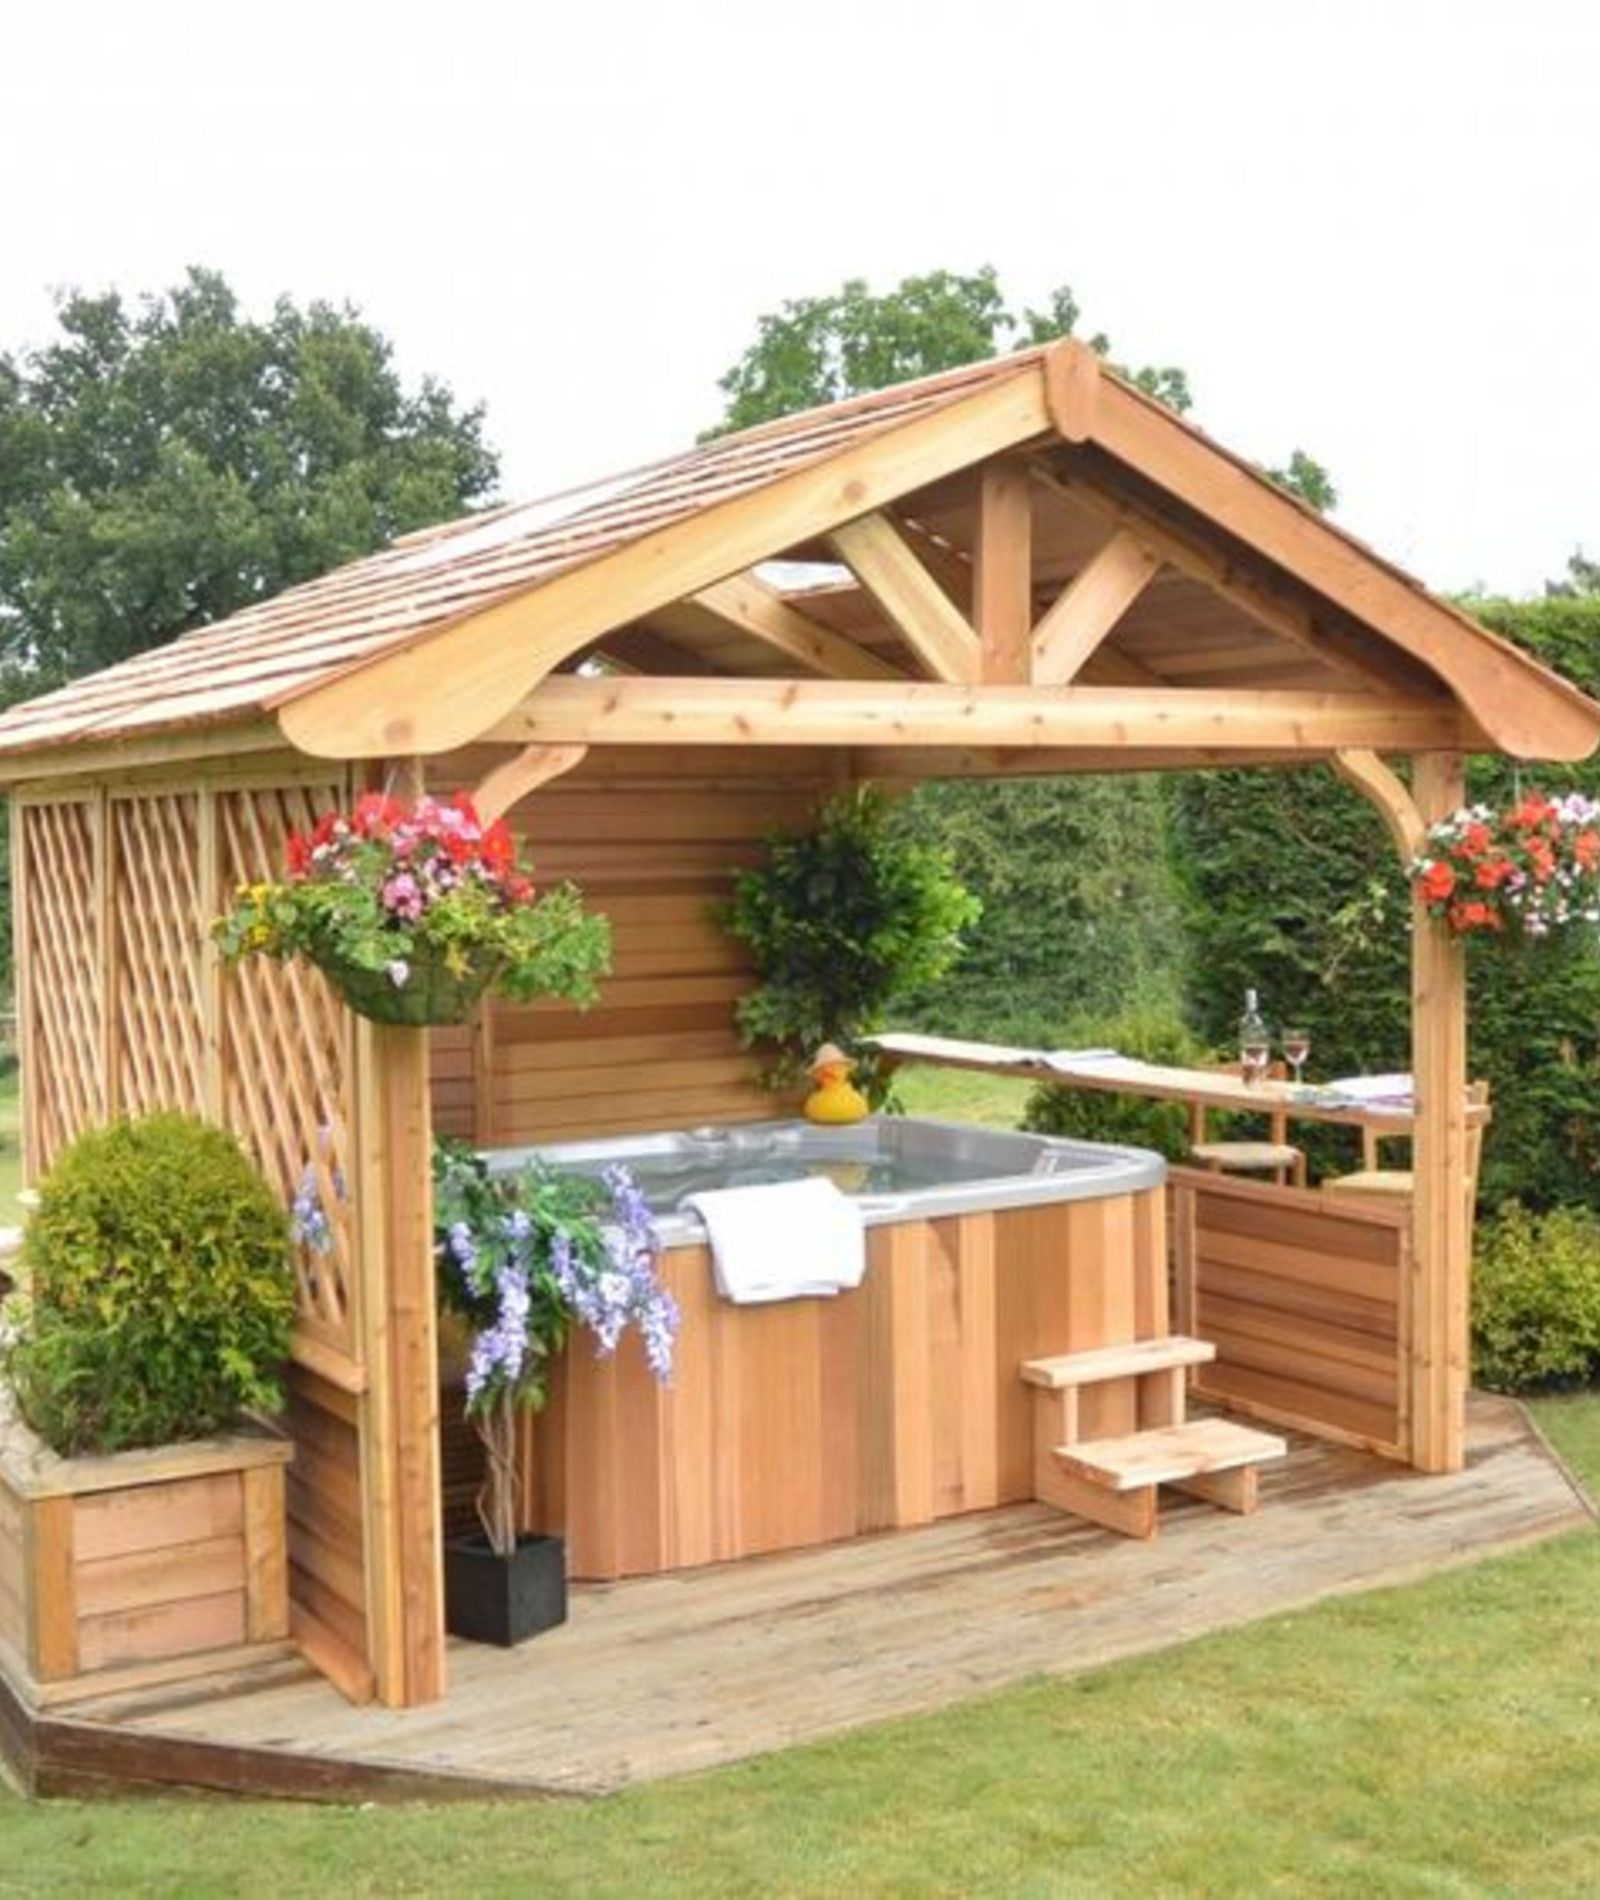 images backyard kits for tub enclosure hot a gazebo suitable